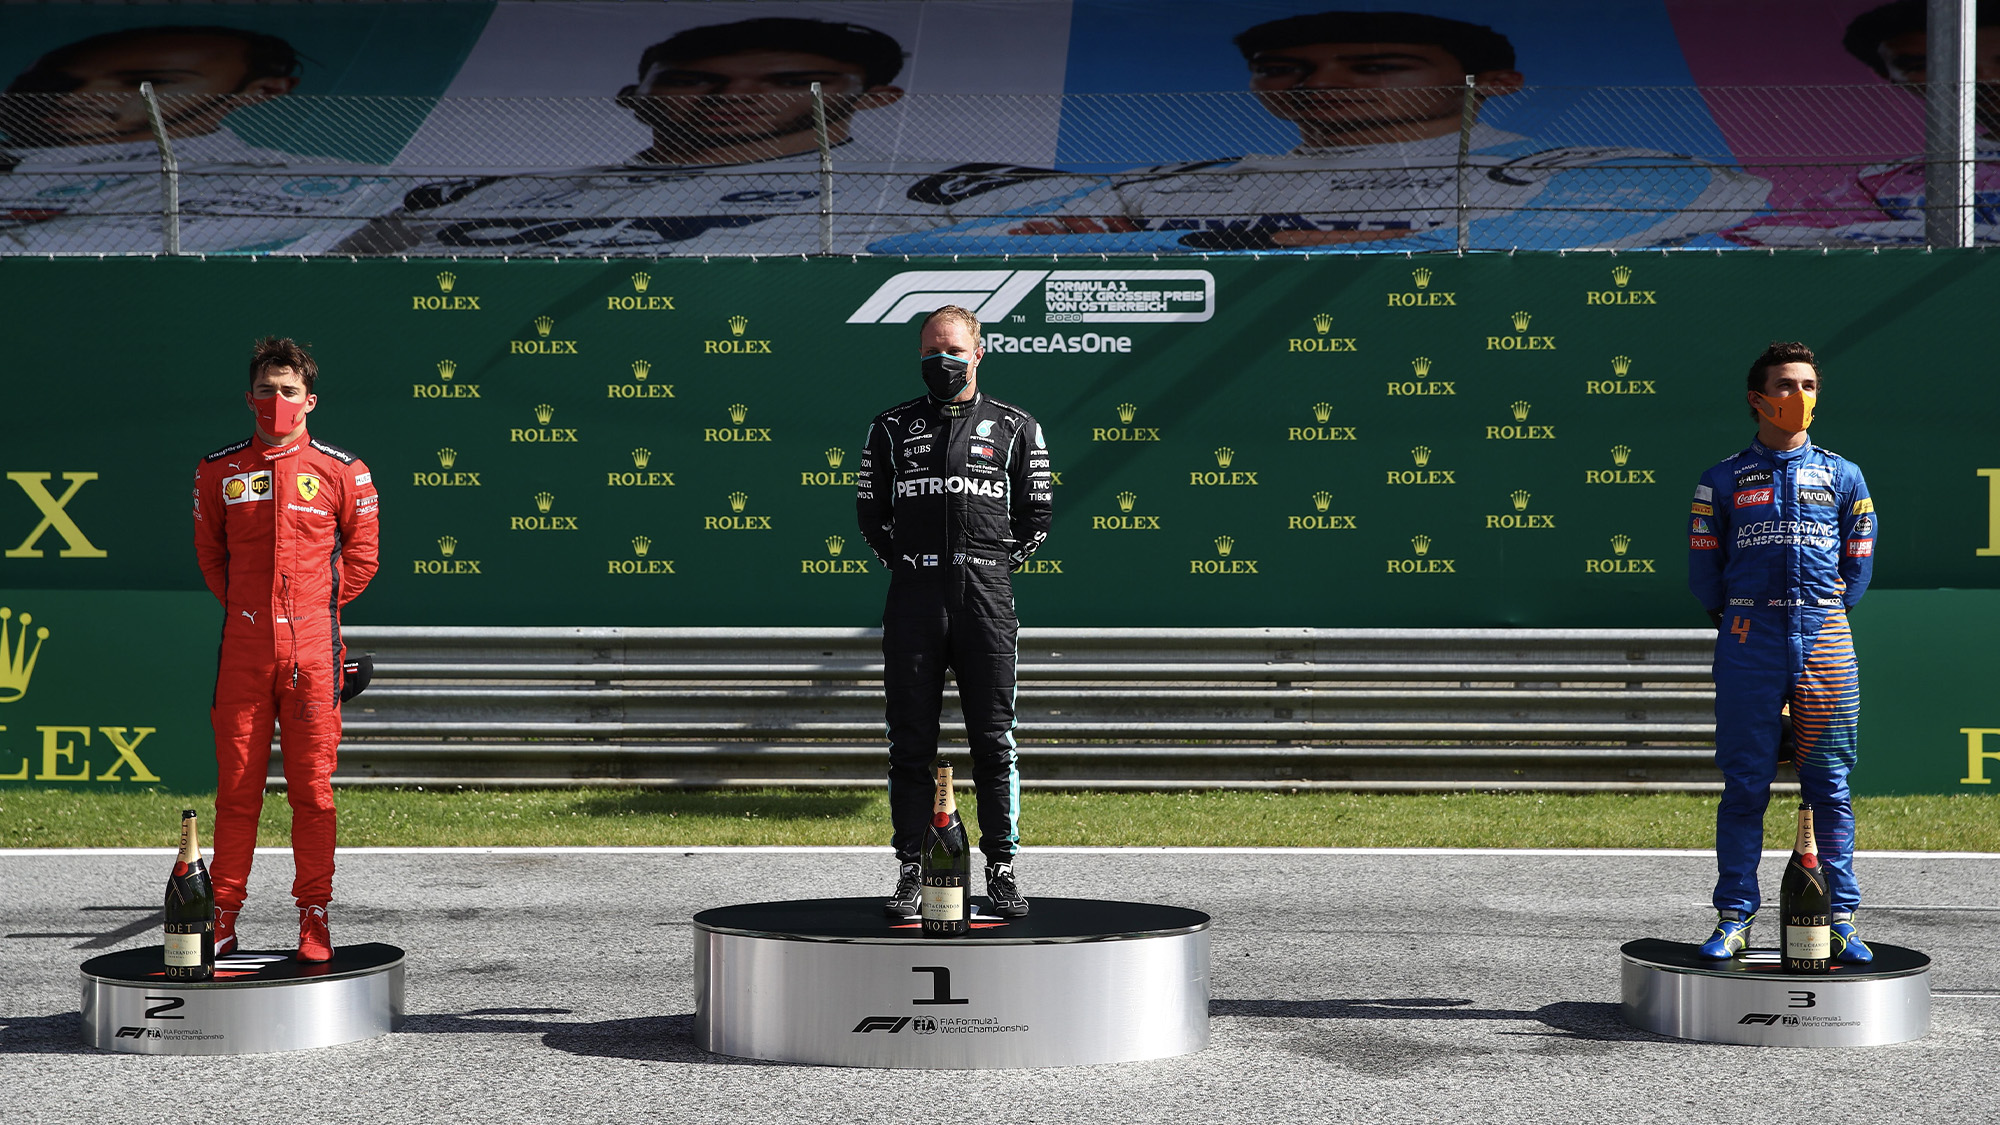 2020 Austrian Grand Prix podium